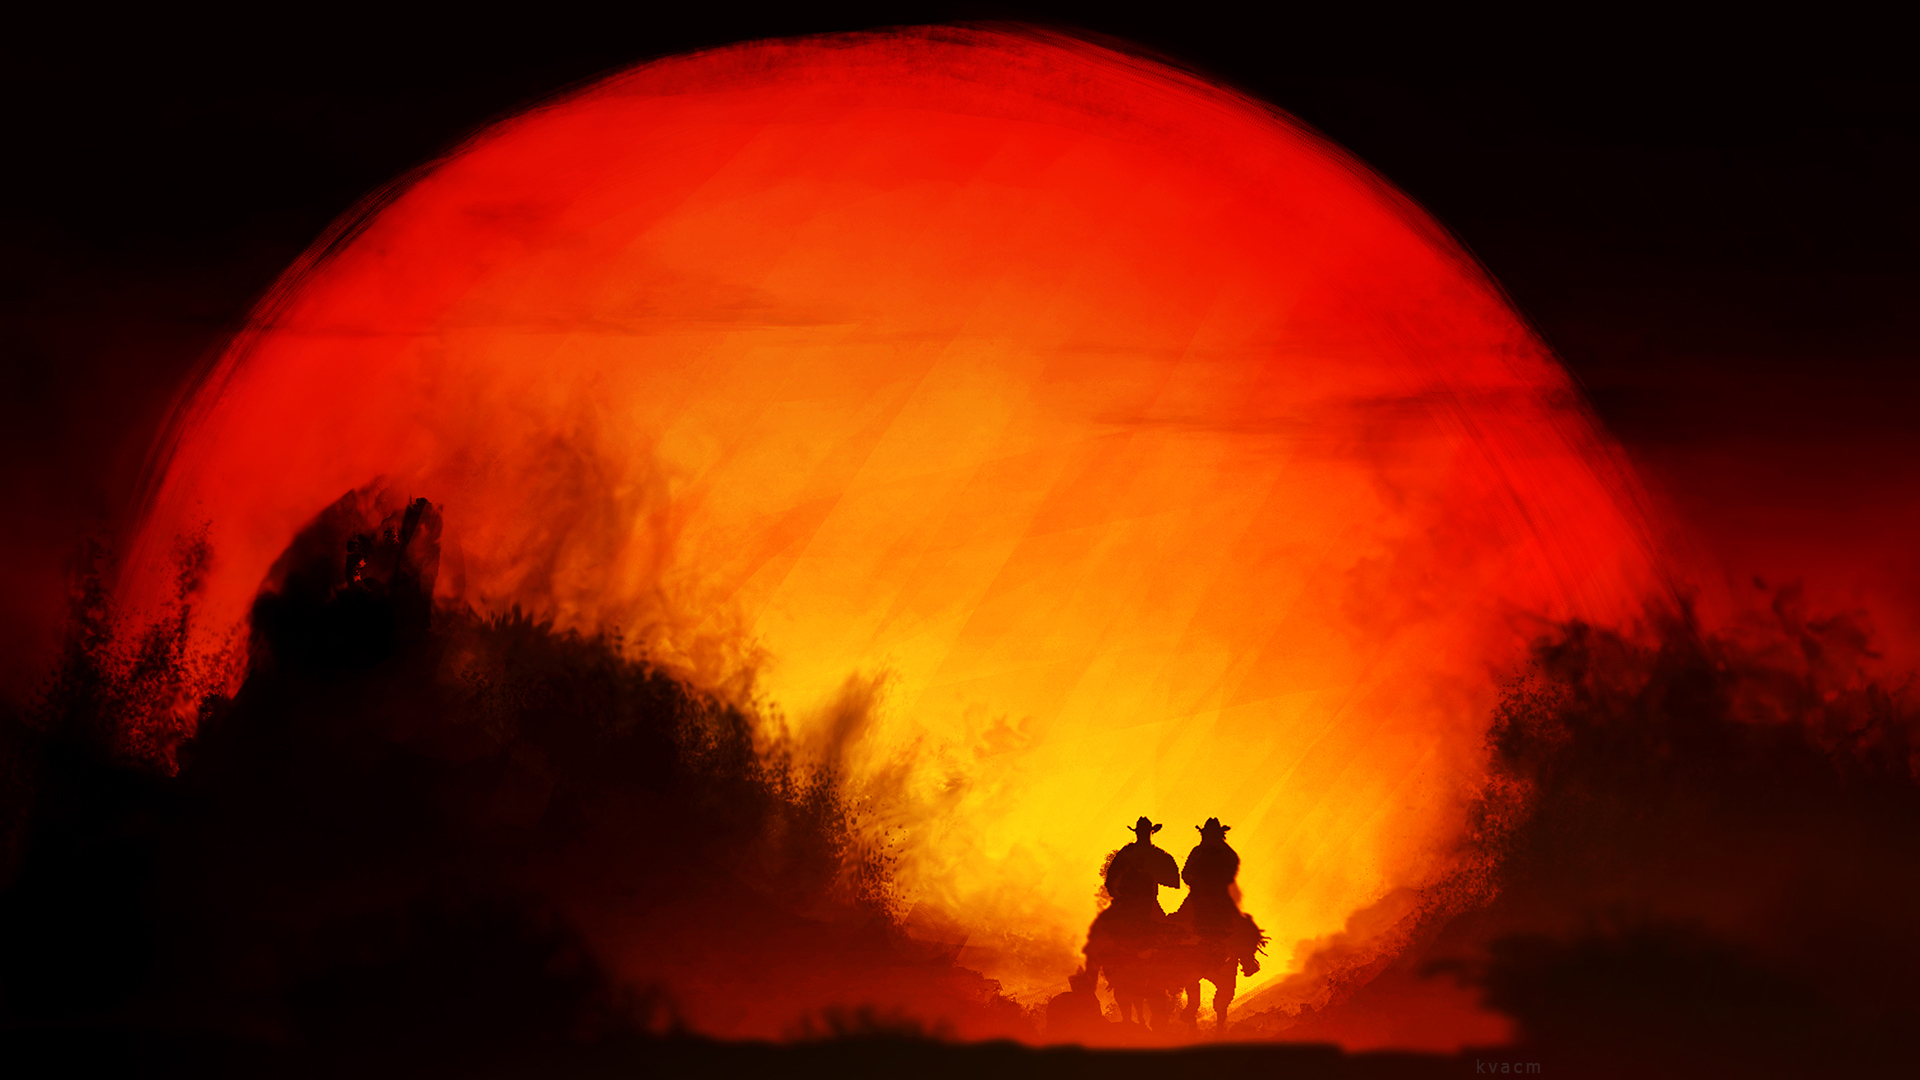 640x960 Red Dead Redemption Fanart Iphone 4 Iphone 4s Hd 4k